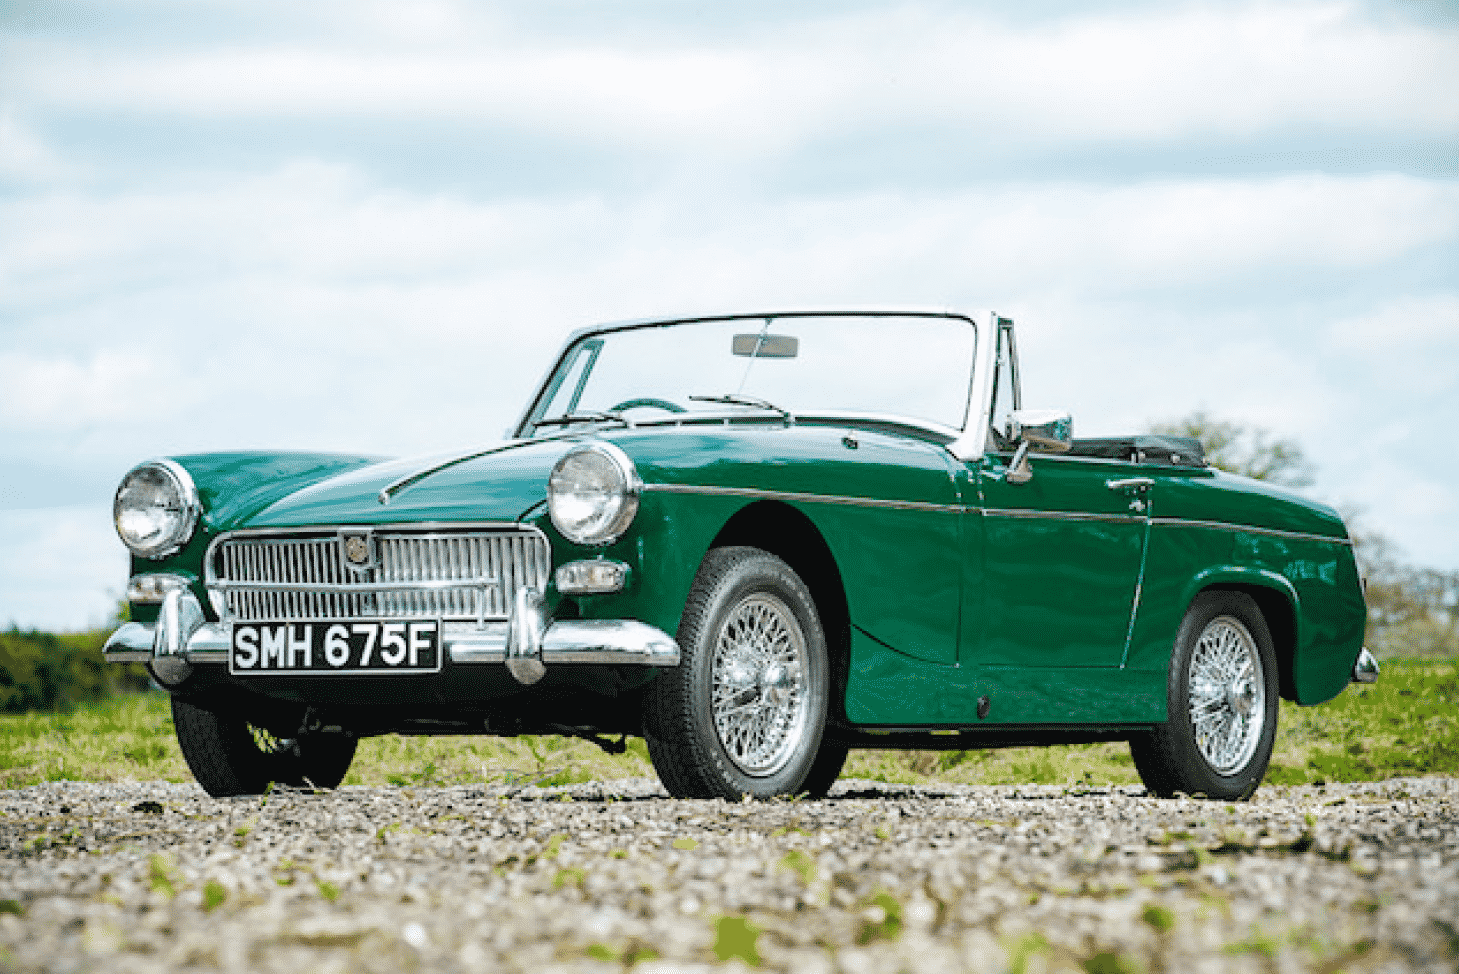 Over 160 Classic Cars Up For Auction – Classic Car Auctions - CARLASSIC